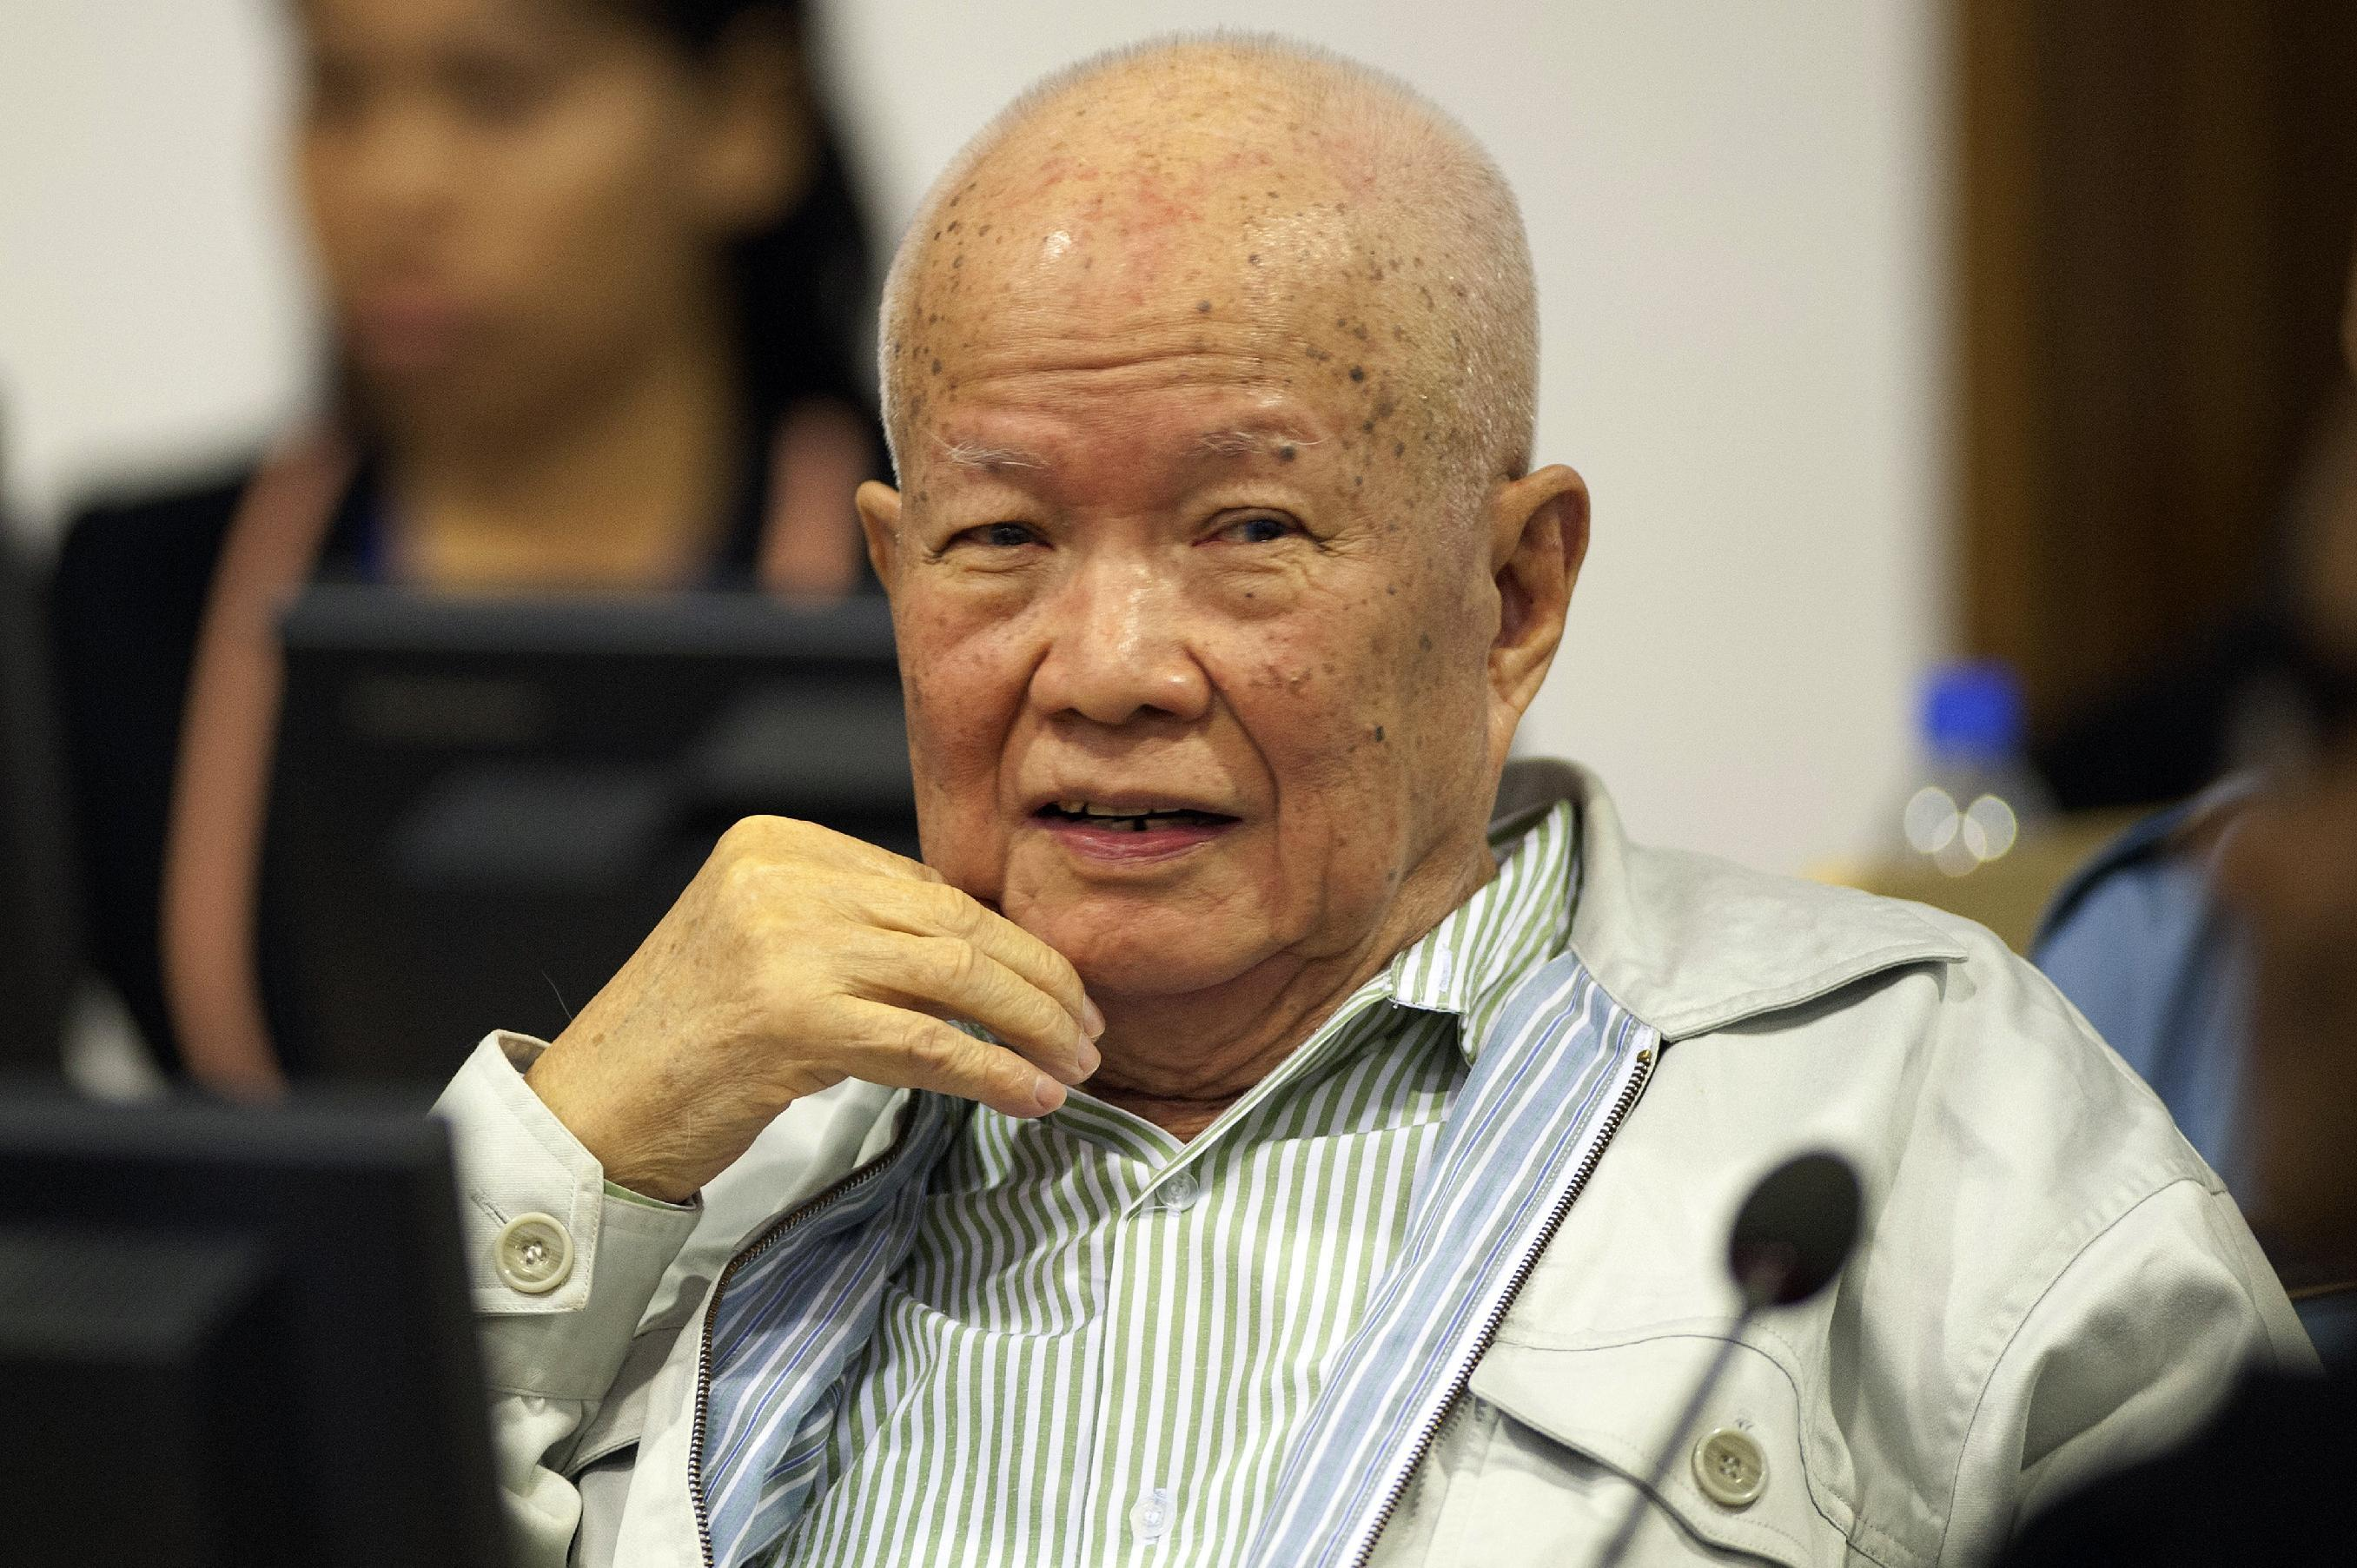 This photo released by the Extraordinary Chamber in the Courts of Cambodia shows former Khmer Rouge leader head of state Khieu Samphan in the courtroom in Phnom Penh on July 30, 2014 (AFP Photo/Mark Peters)